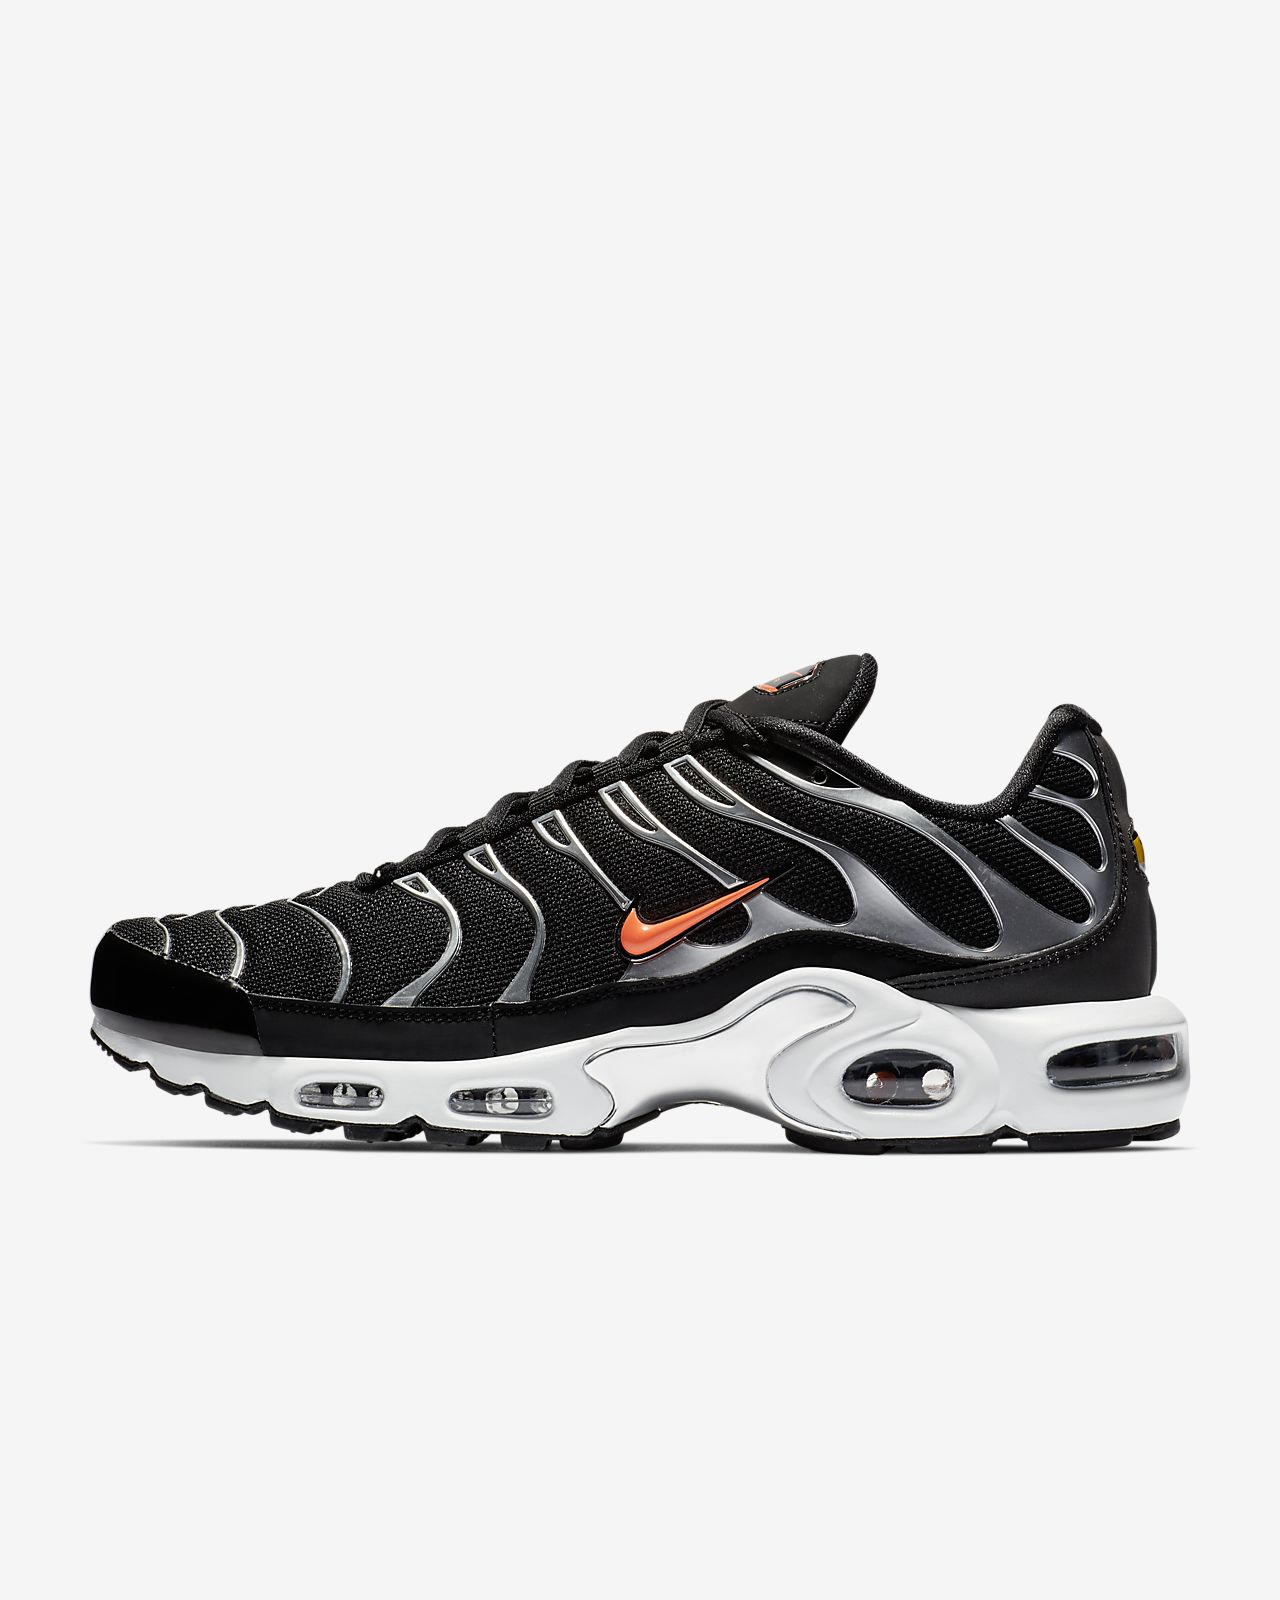 cb6dc51ecfe Nike Air Max Plus TN SE Men s Shoe. Nike.com GB